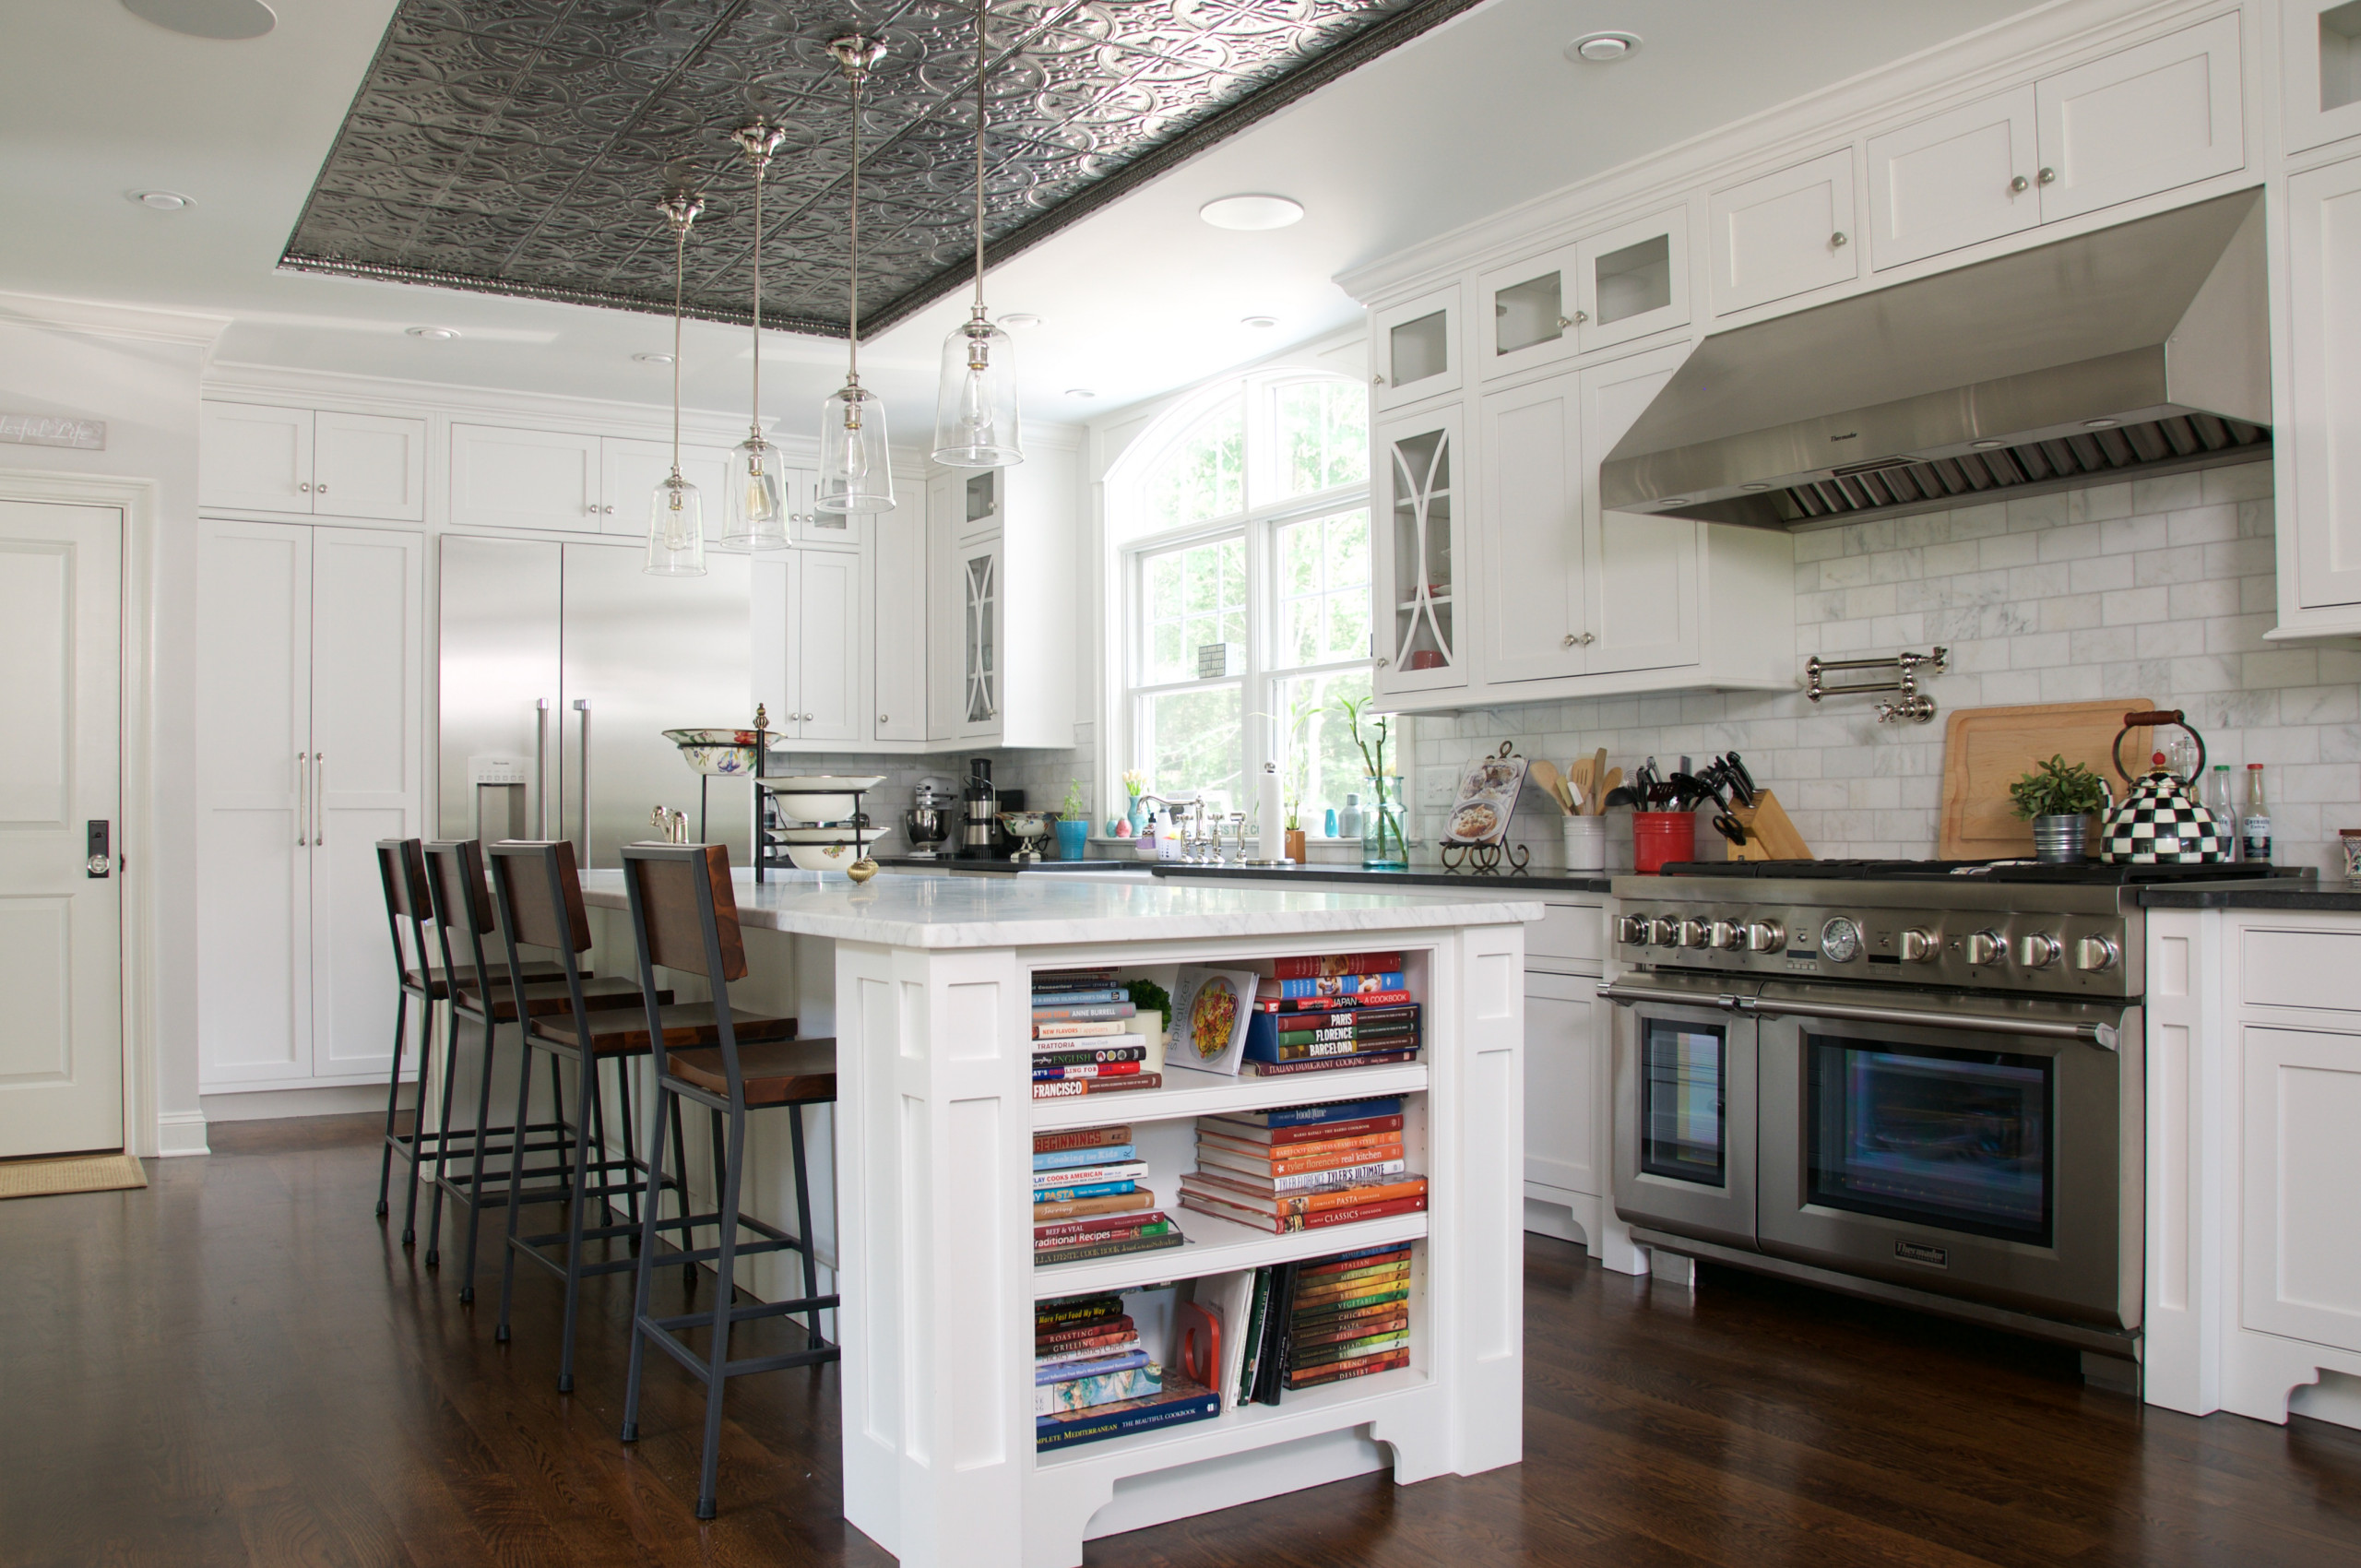 75 Beautiful Home Design Pictures Ideas February 2021 Houzz